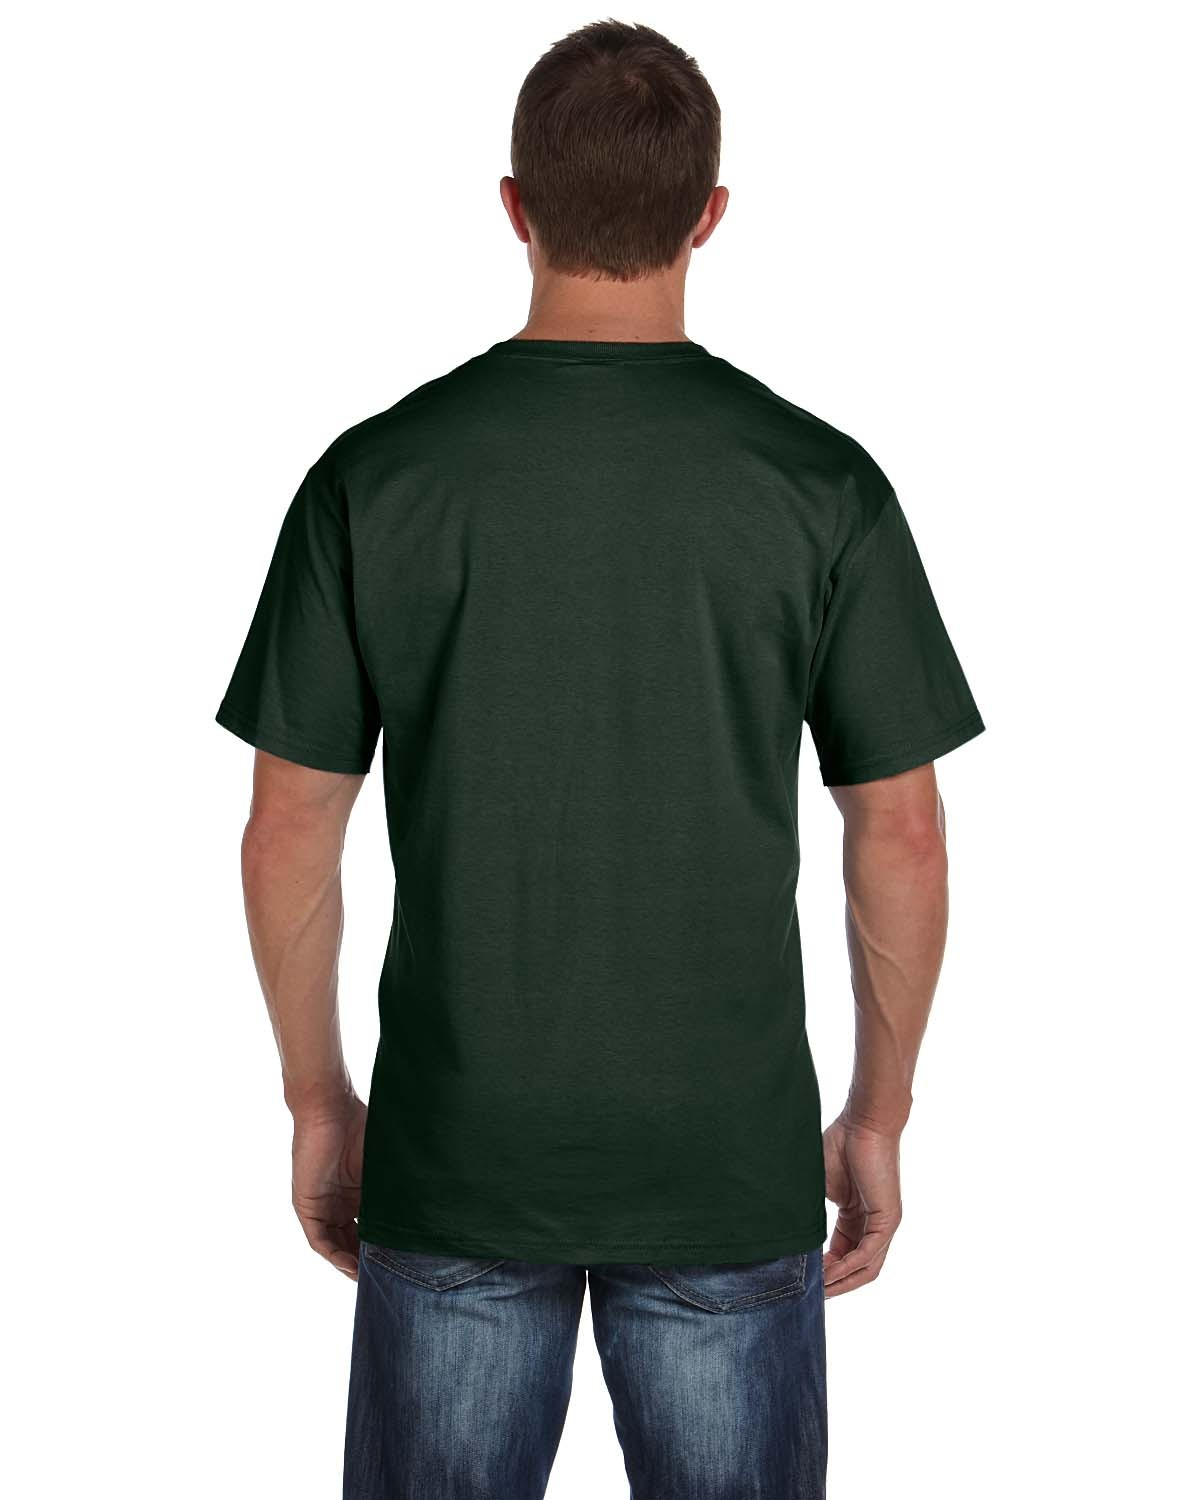 3931P Fruit of the Loom FOREST GREEN